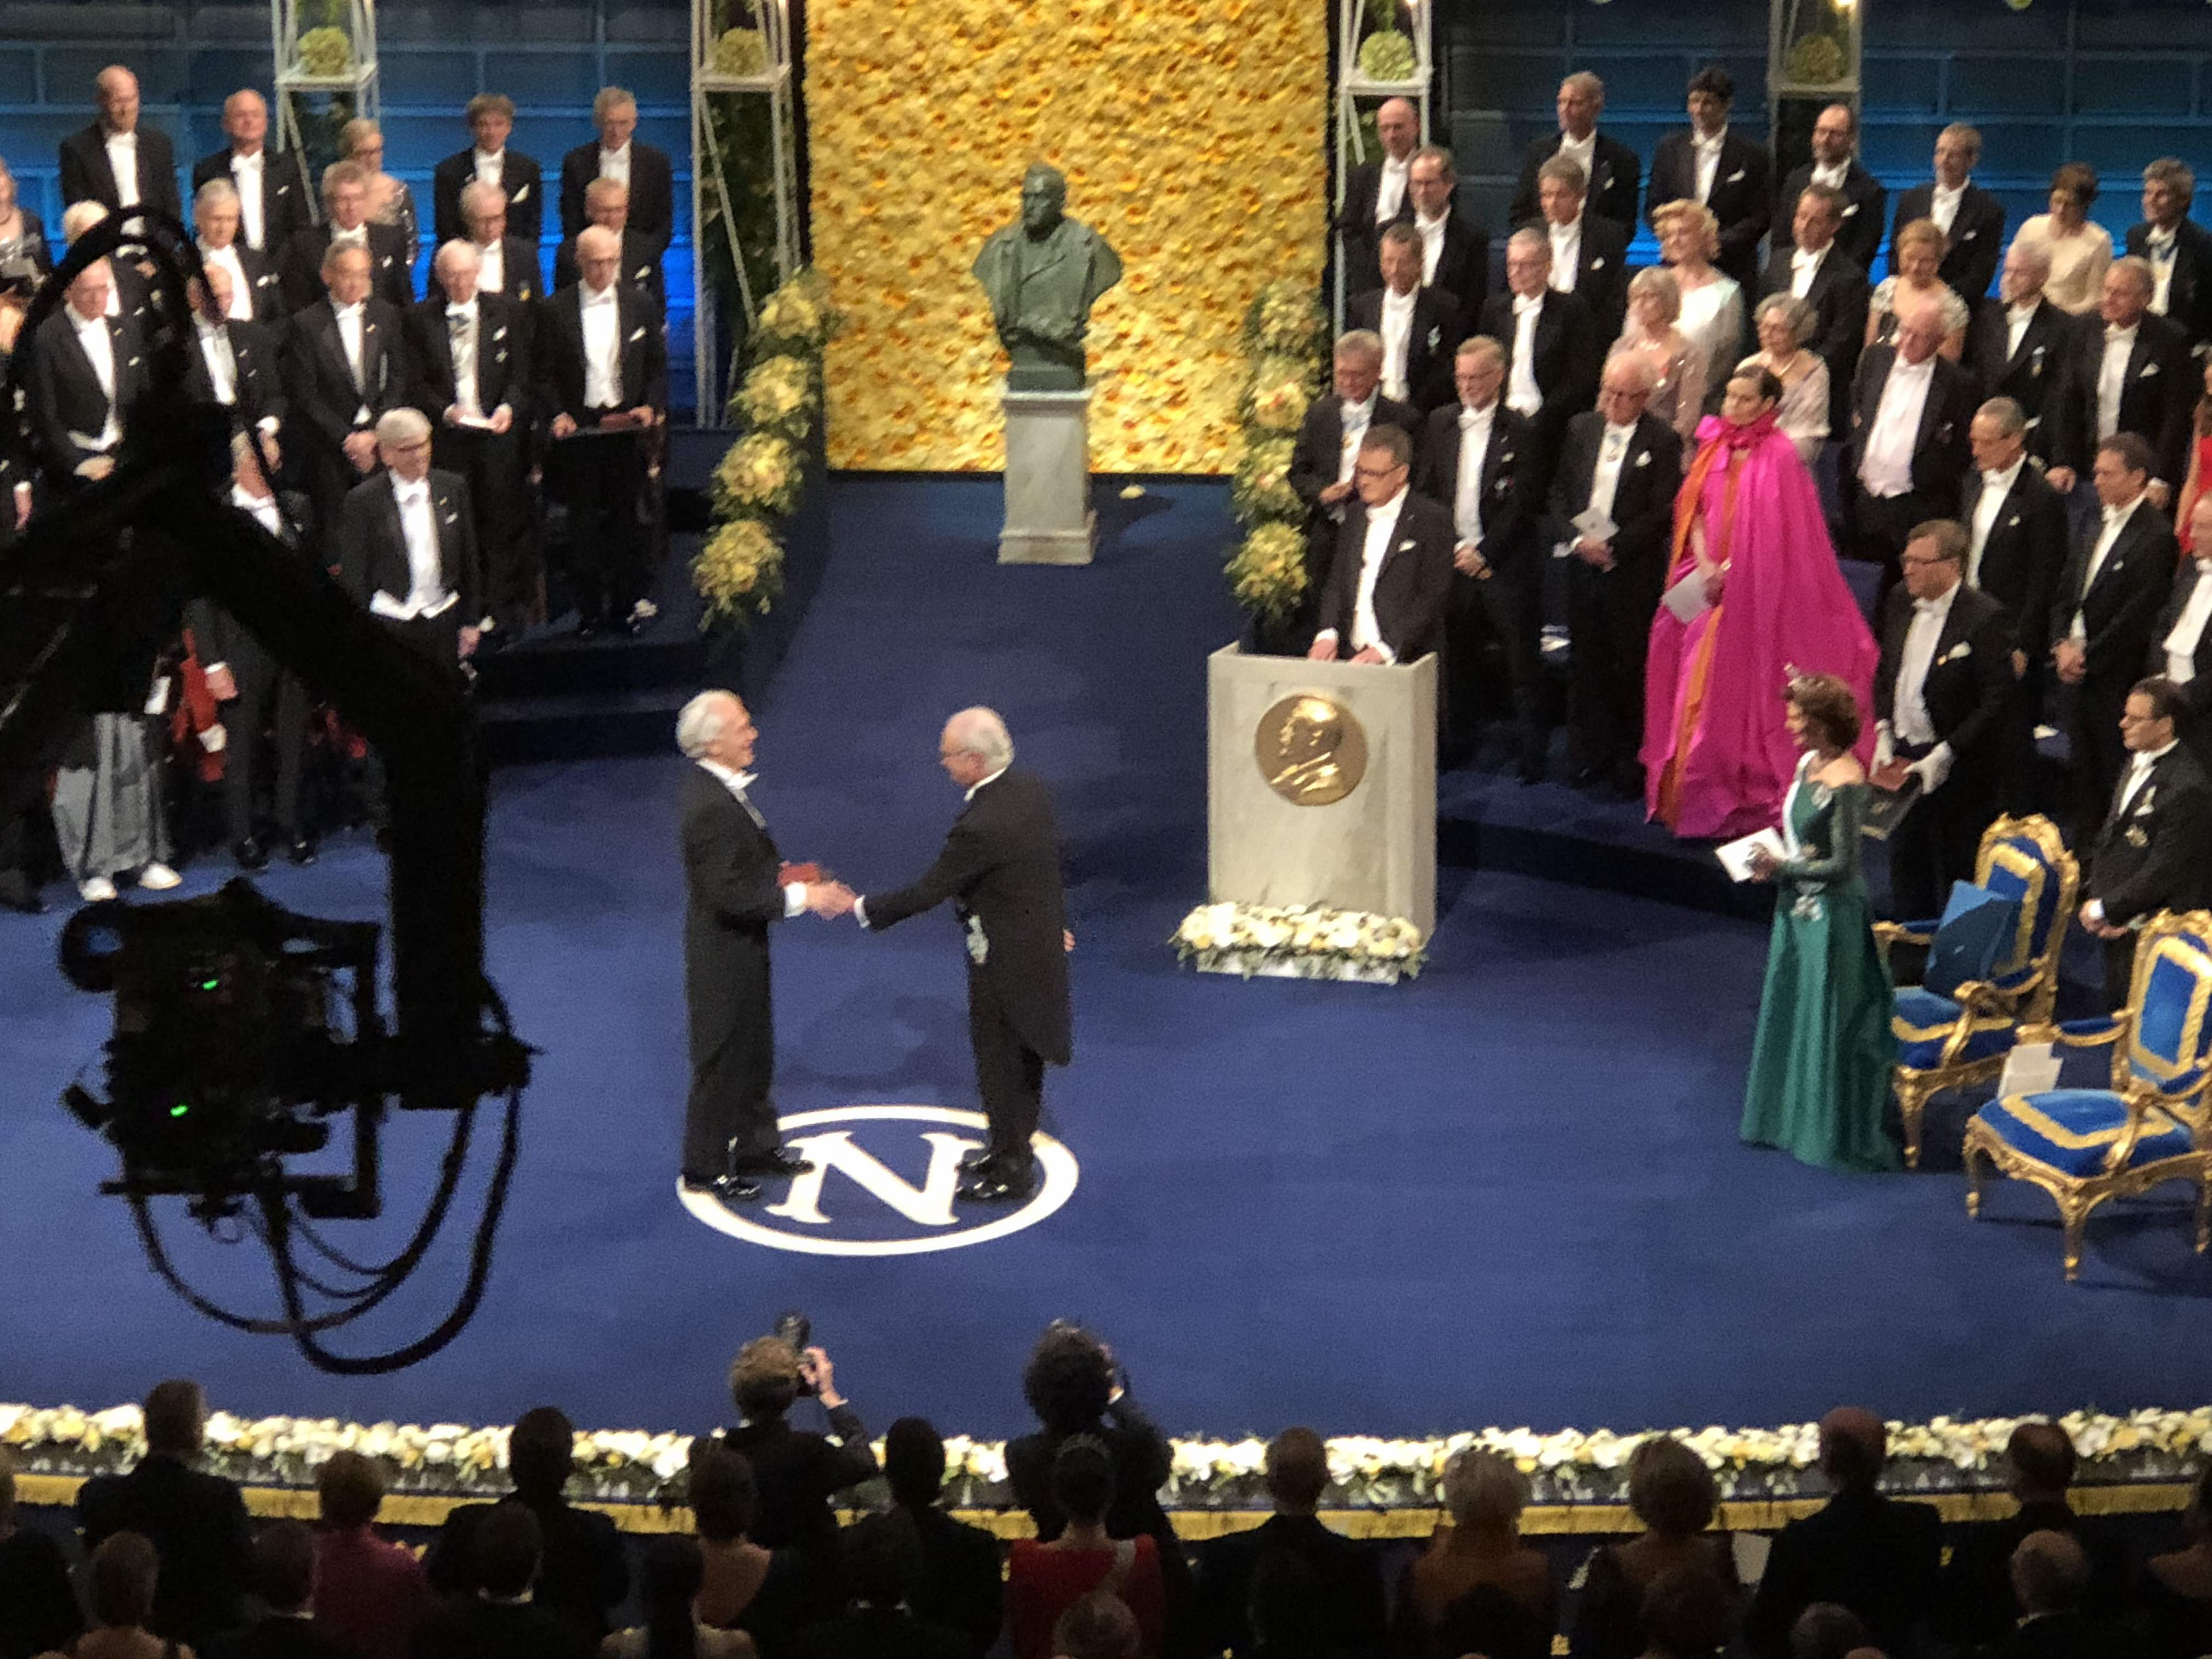 Gérard Mourou accepts the Nobel Prize in Physics from the King of Sweden.